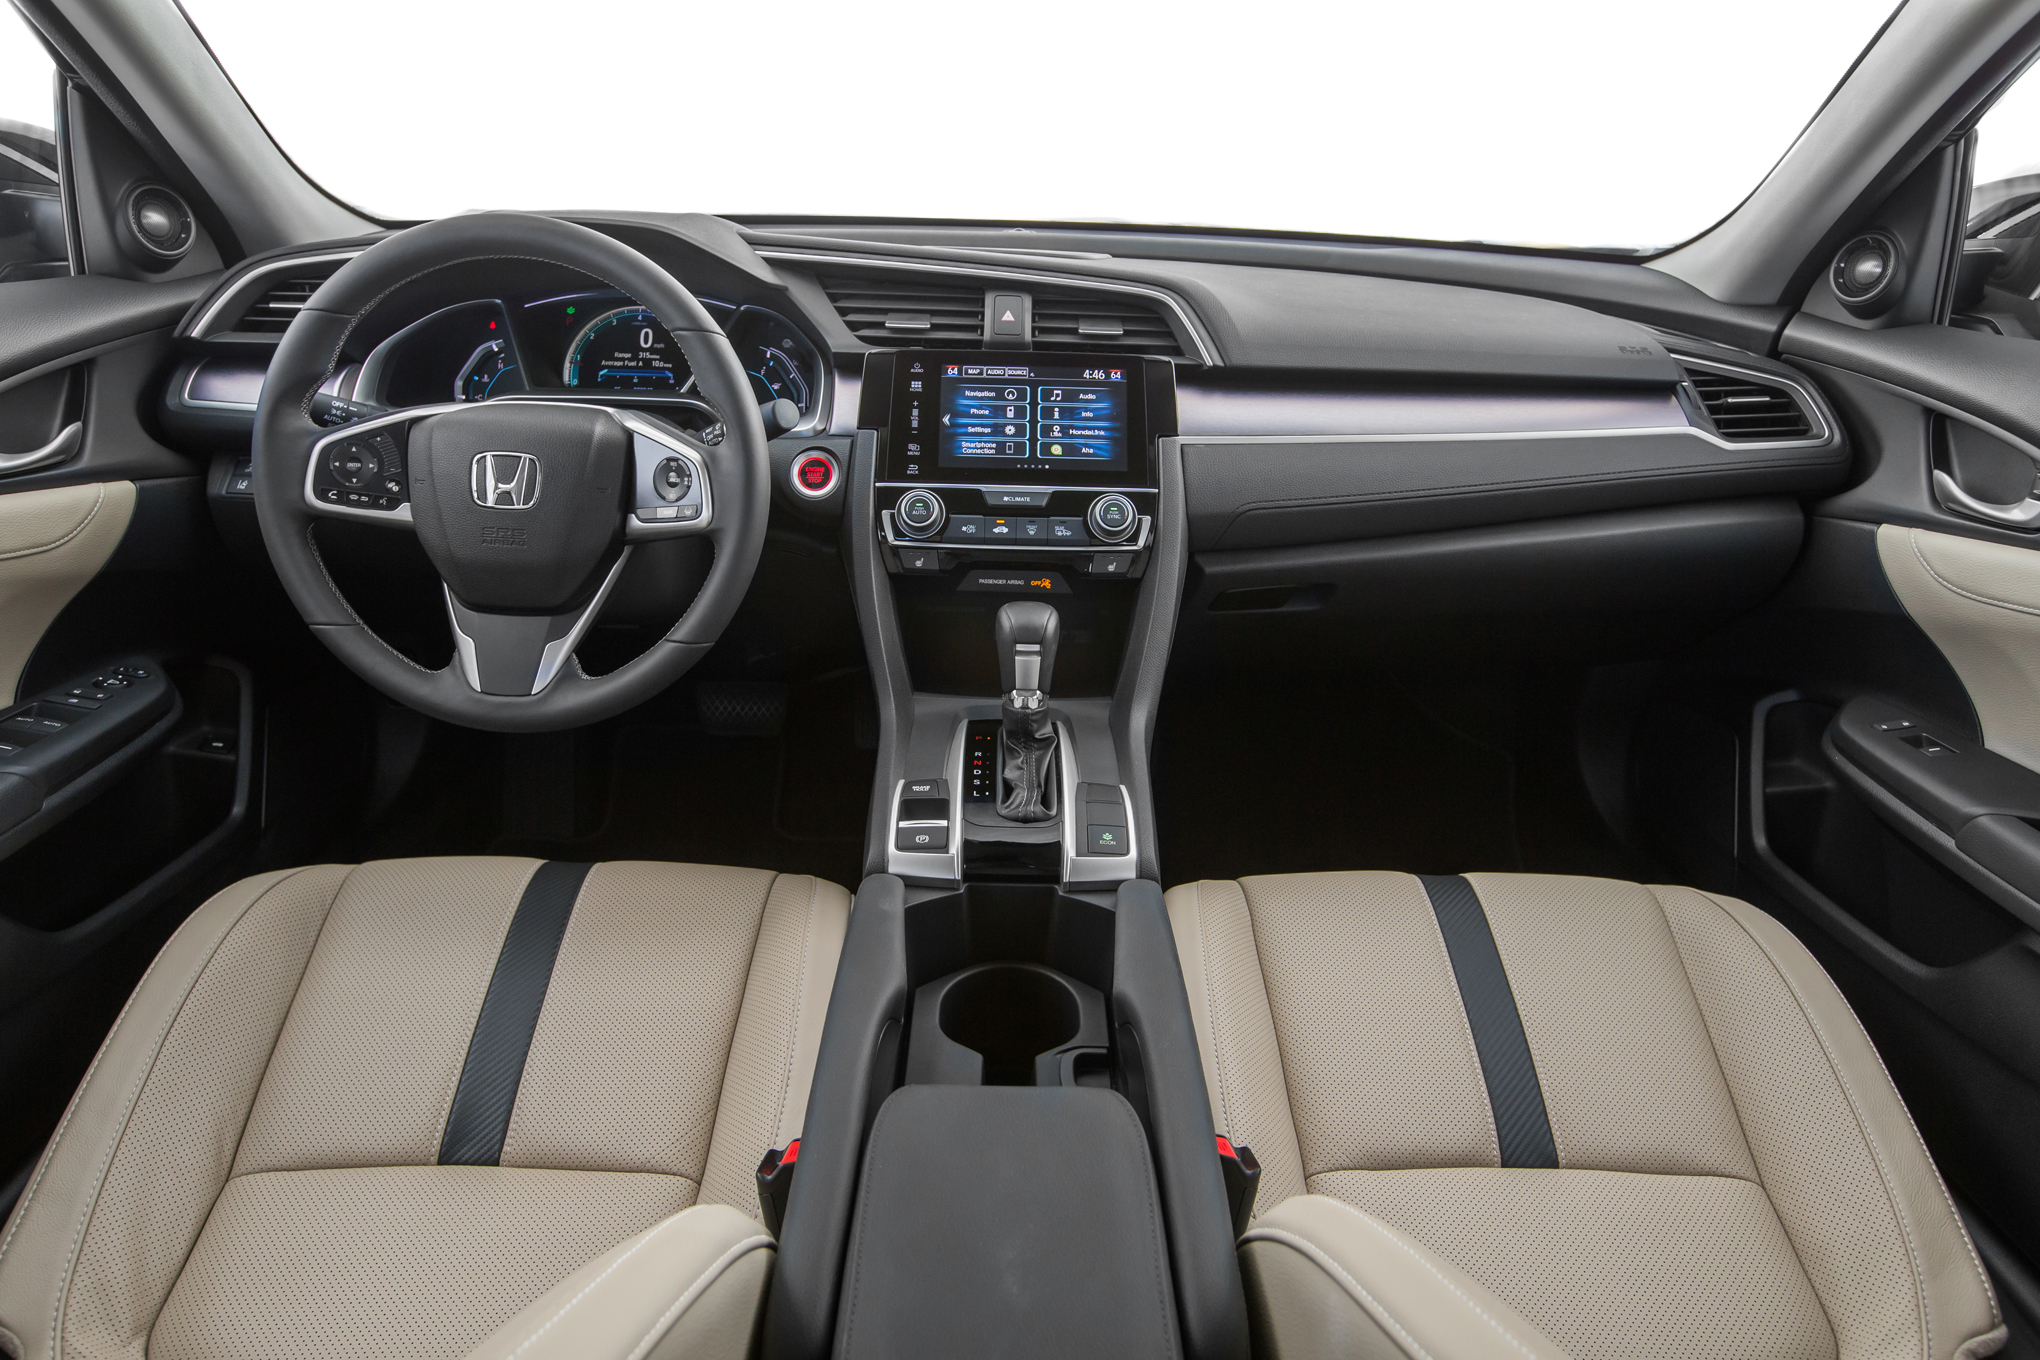 2016 Honda Civic Touring Sedan Interior (View 1 of 36)